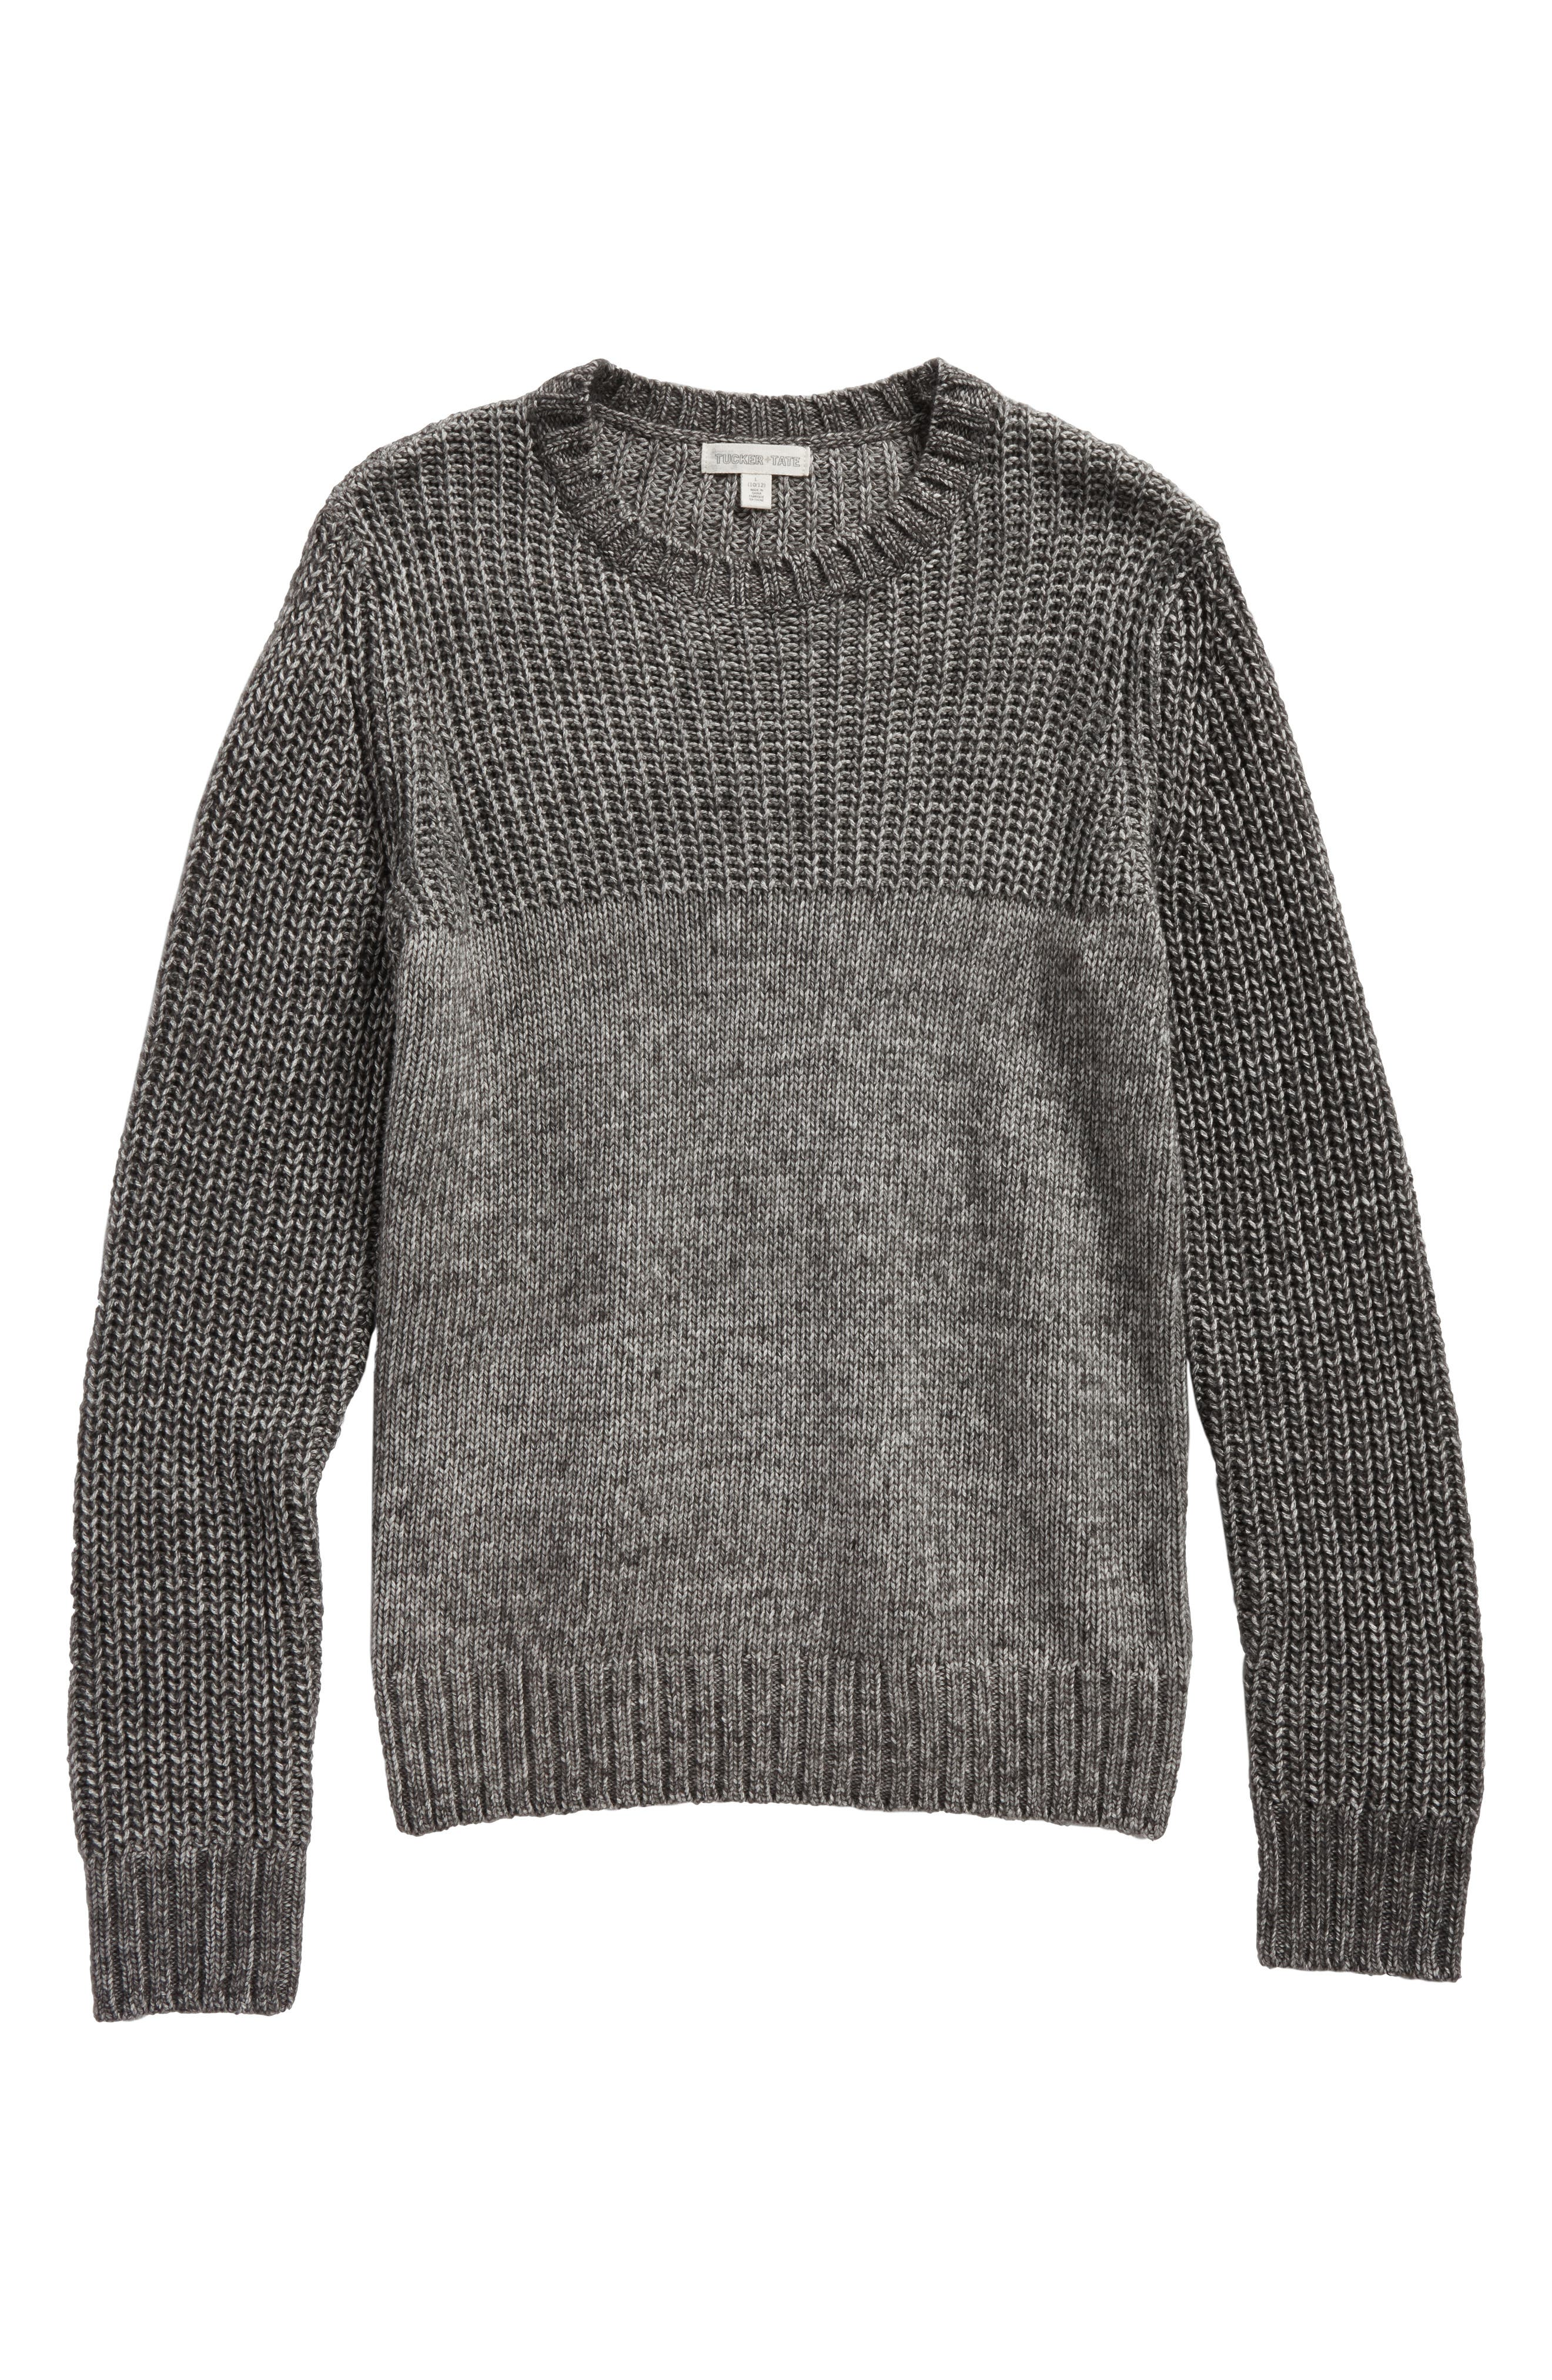 Main Image - Tucker + Tate Mix Knit Sweater (Big Boys)